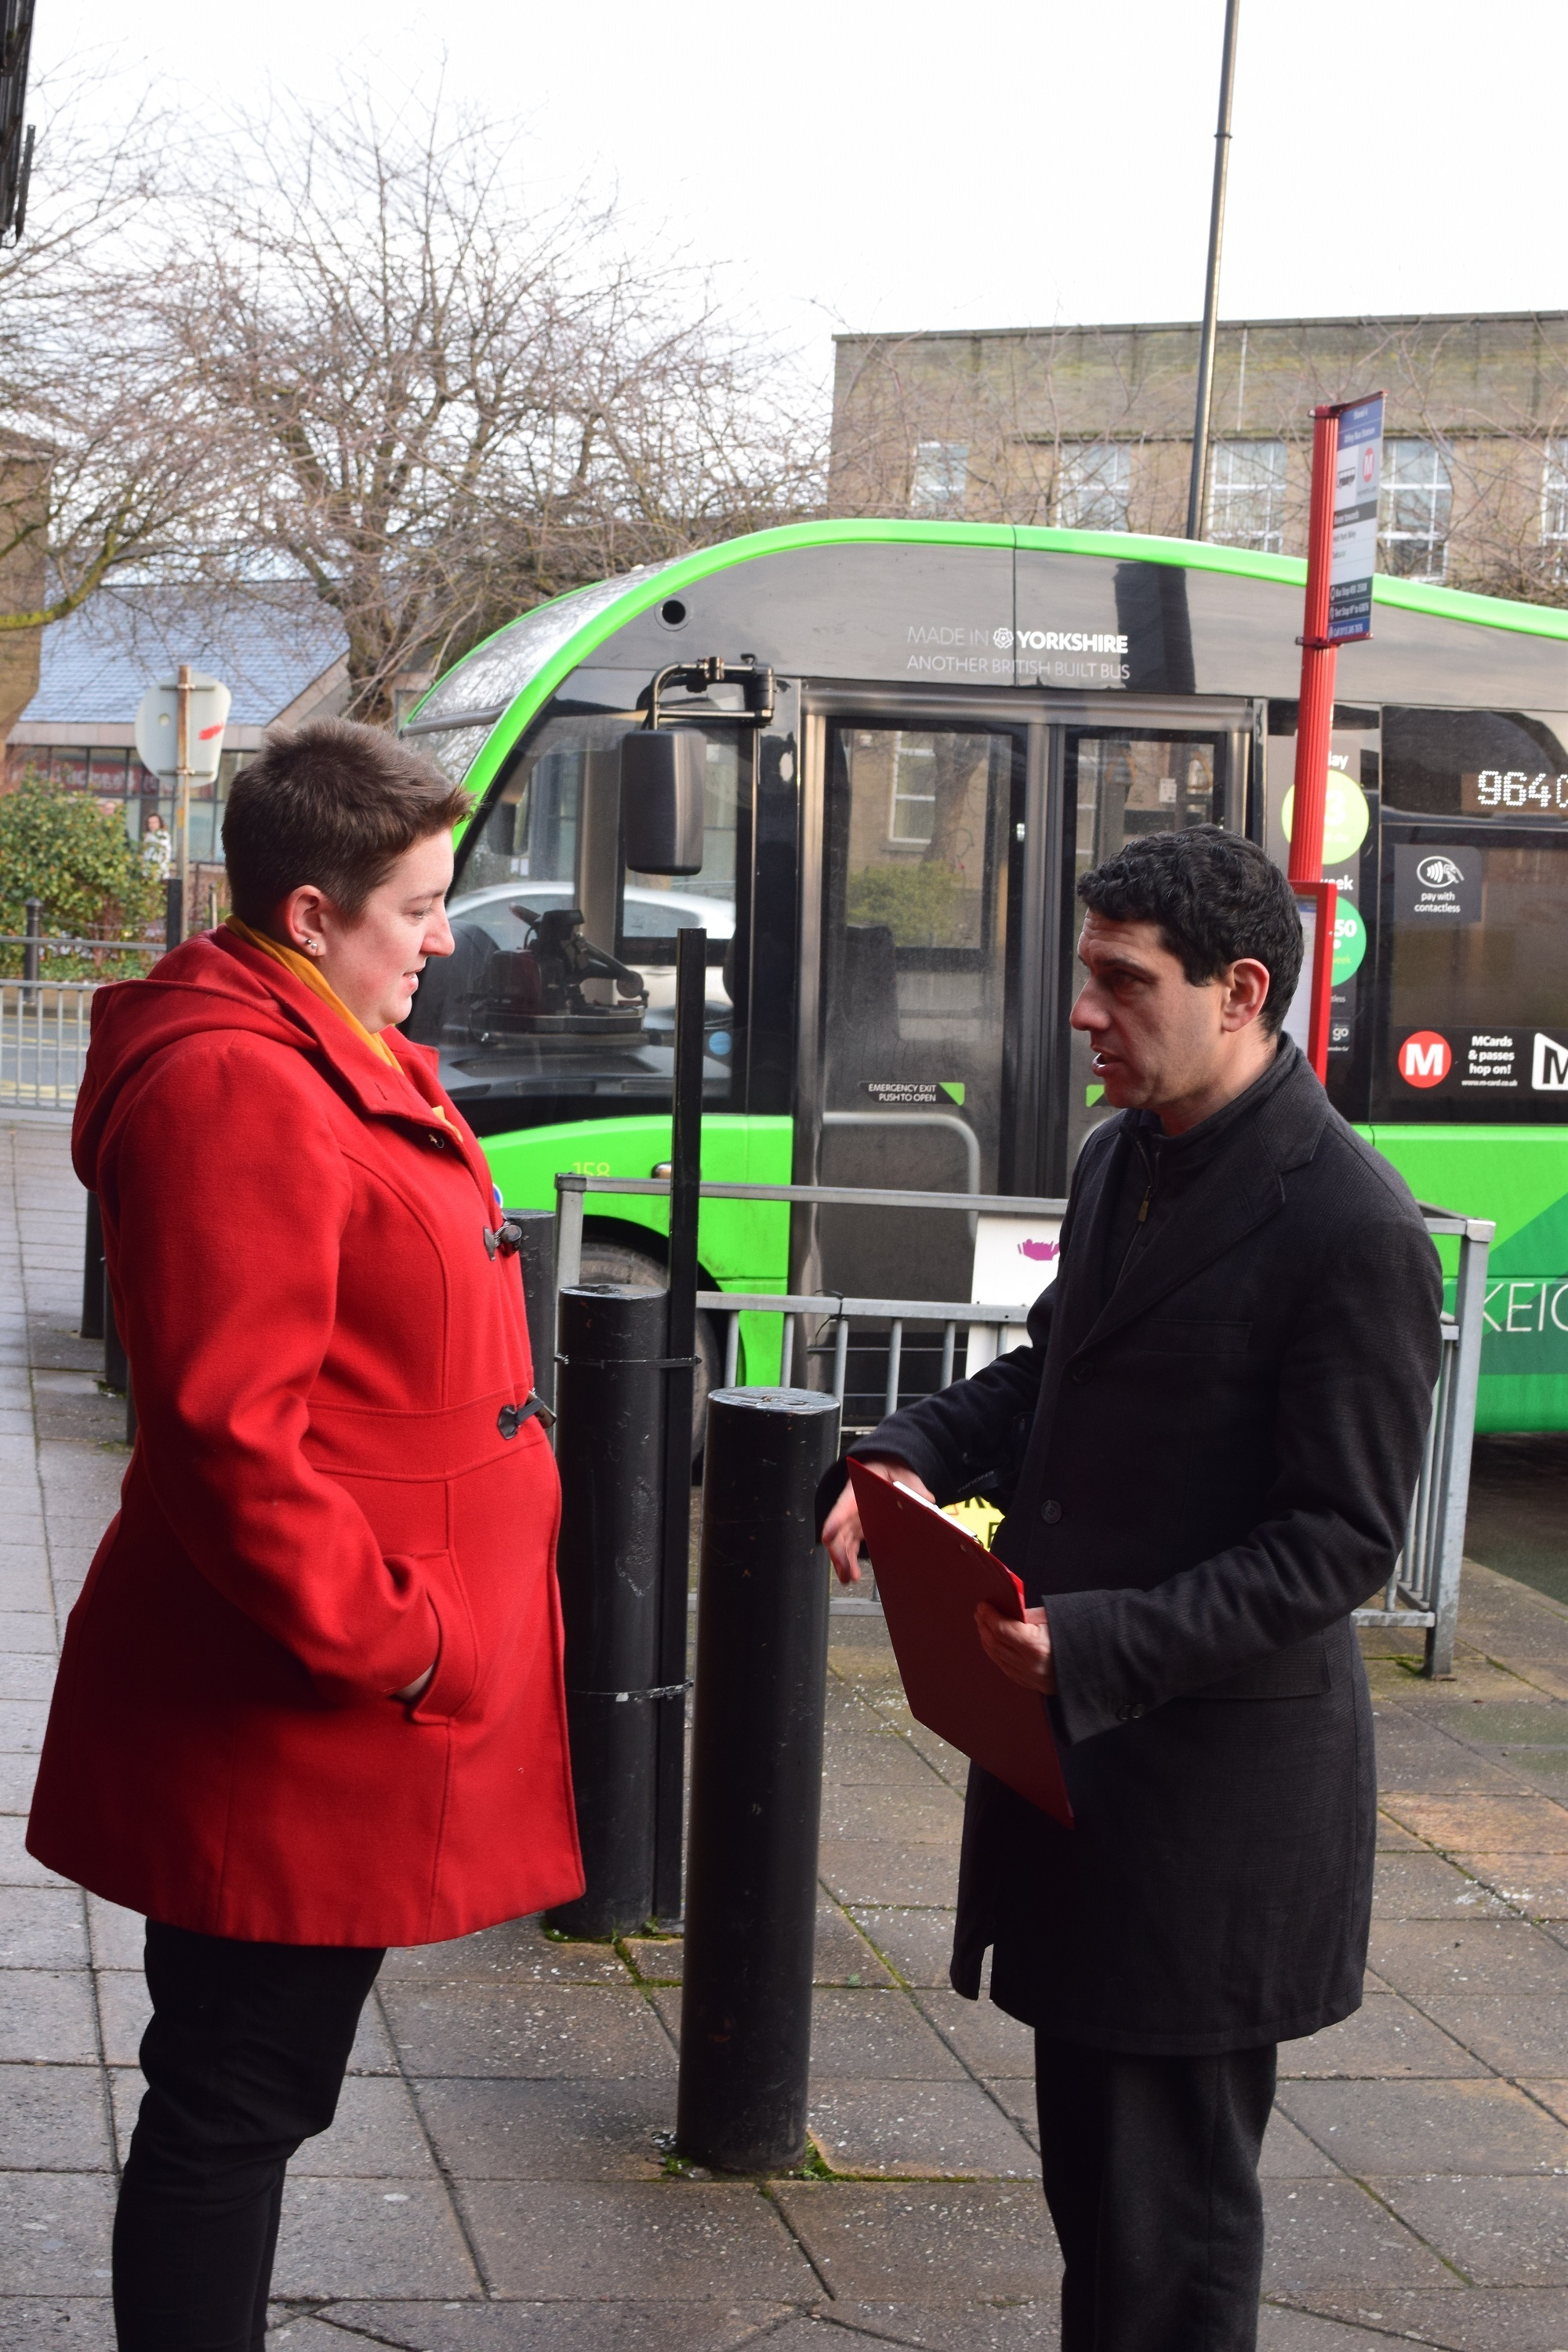 MP Alex Sobel in discussion with a passenger at Otley Bus Station